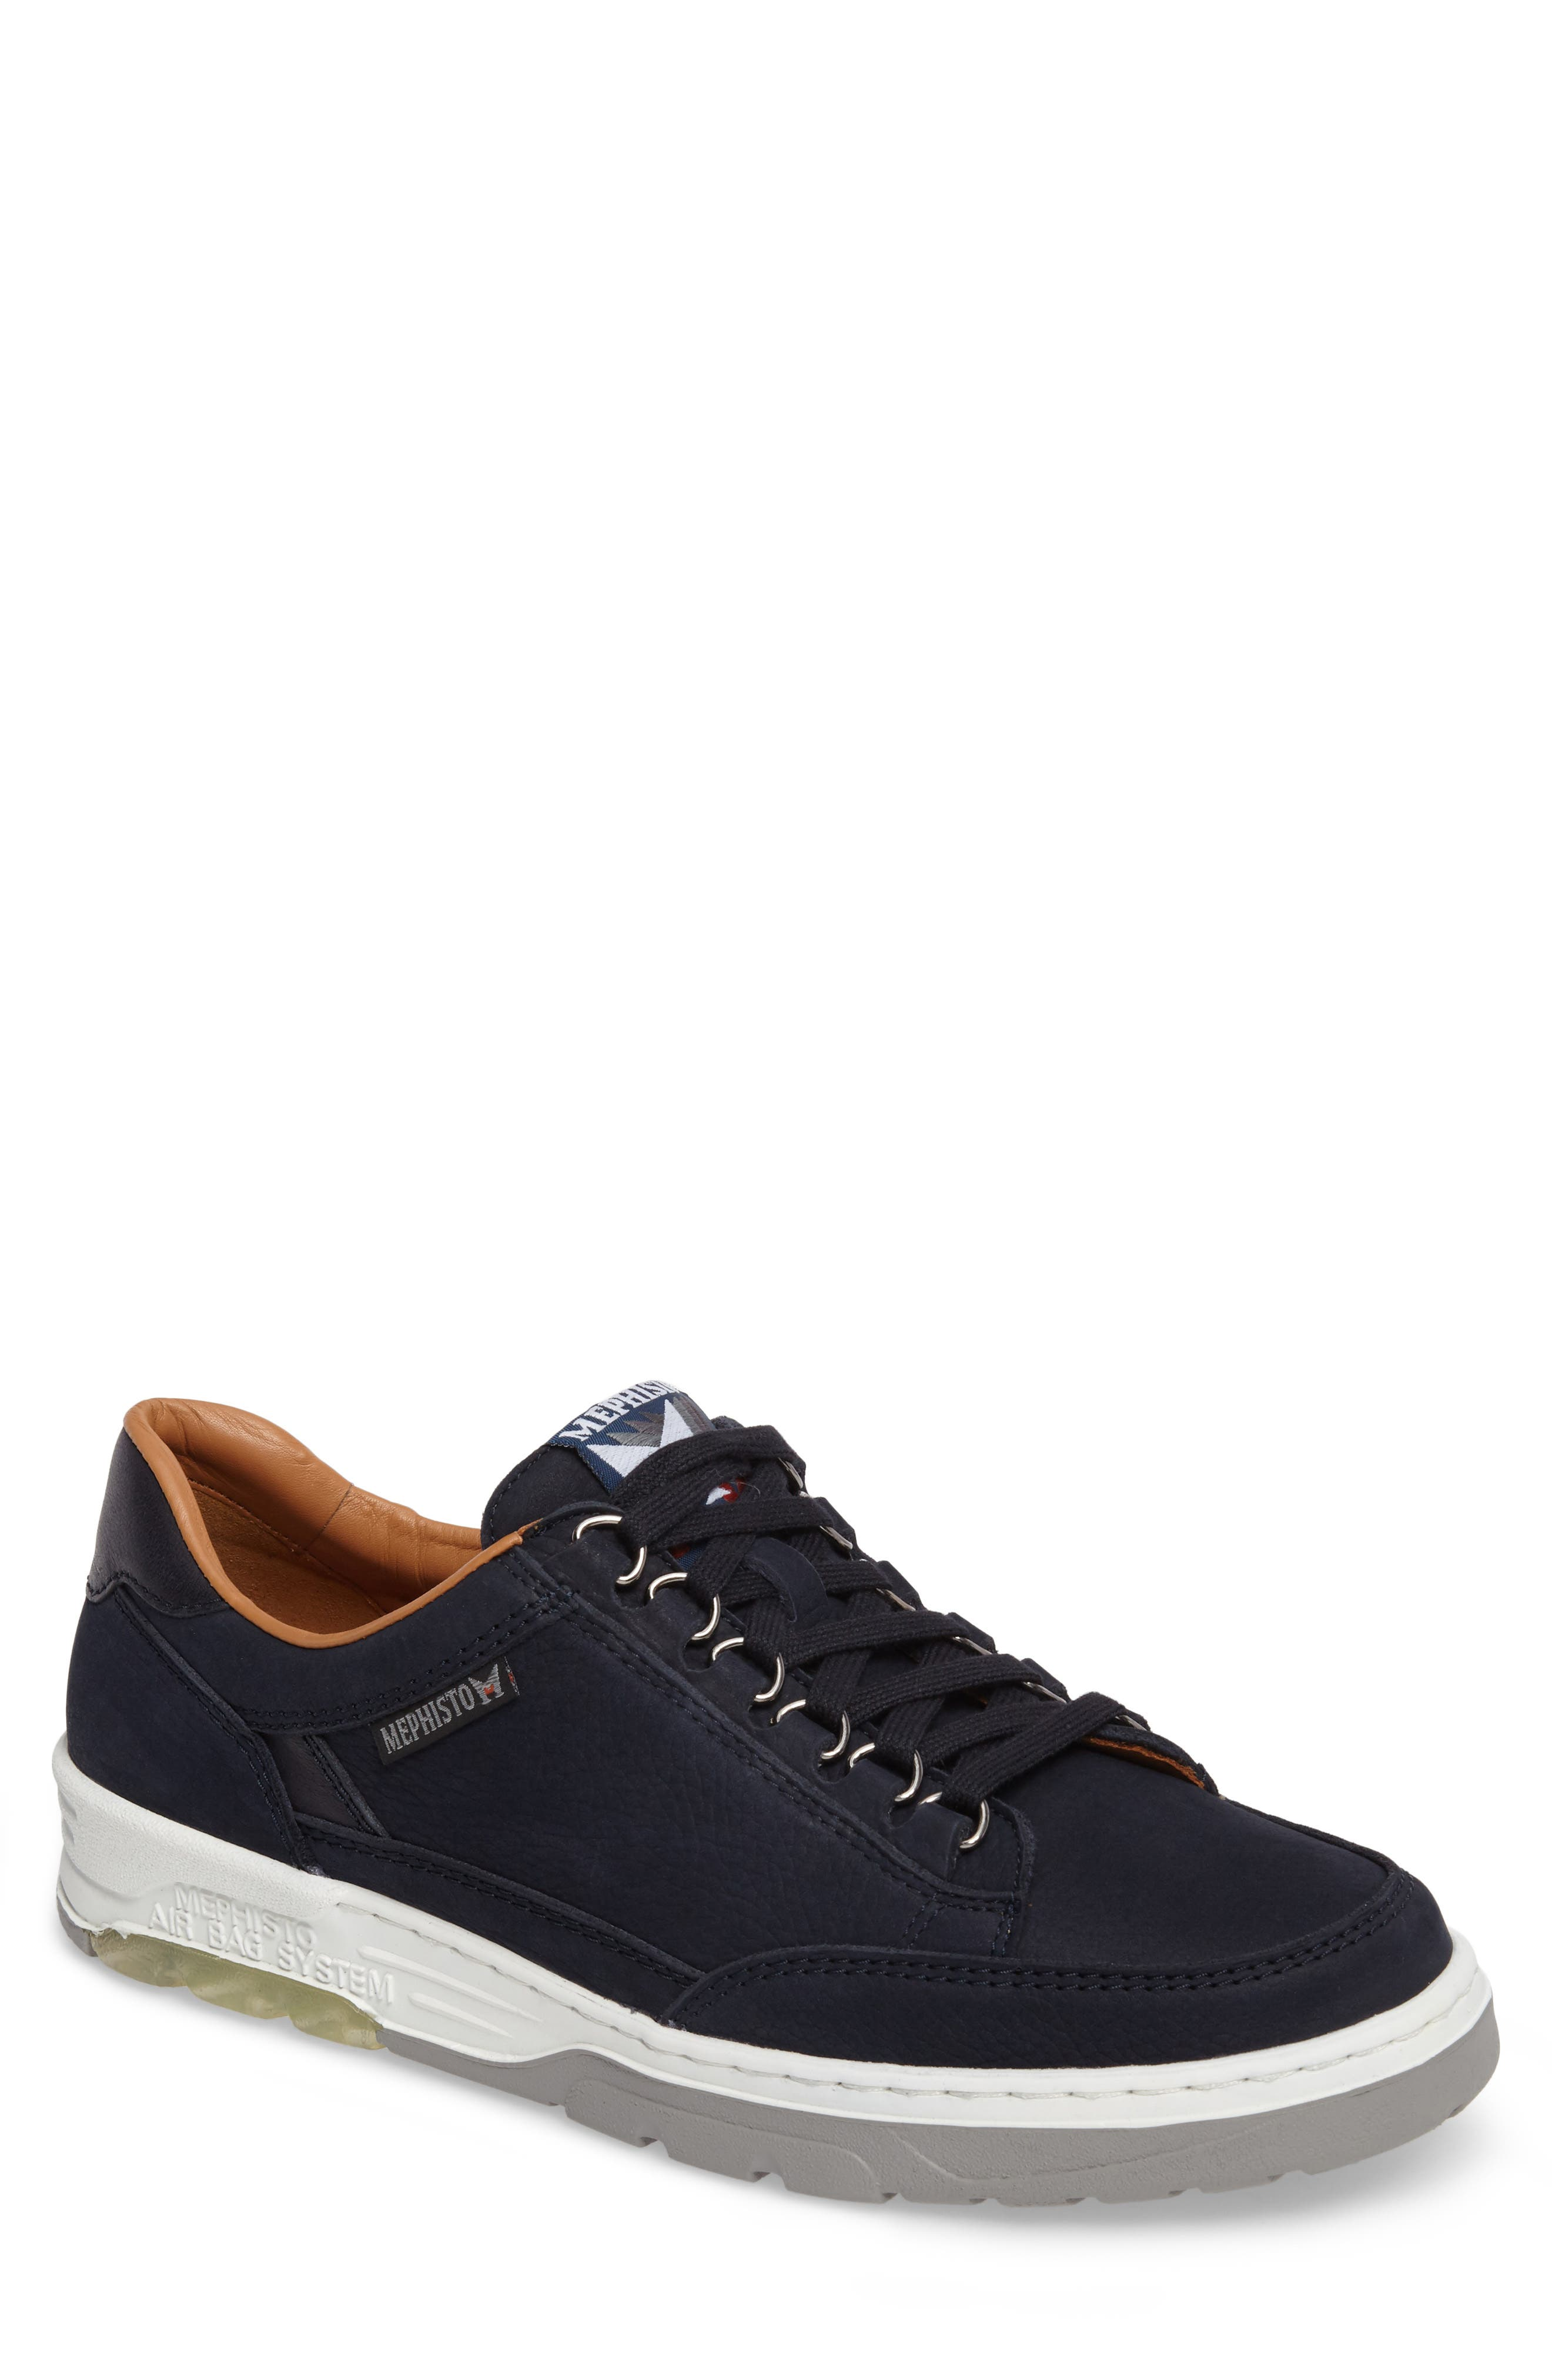 Alternate Image 1 Selected - Mephisto Mick Sneaker (Men)